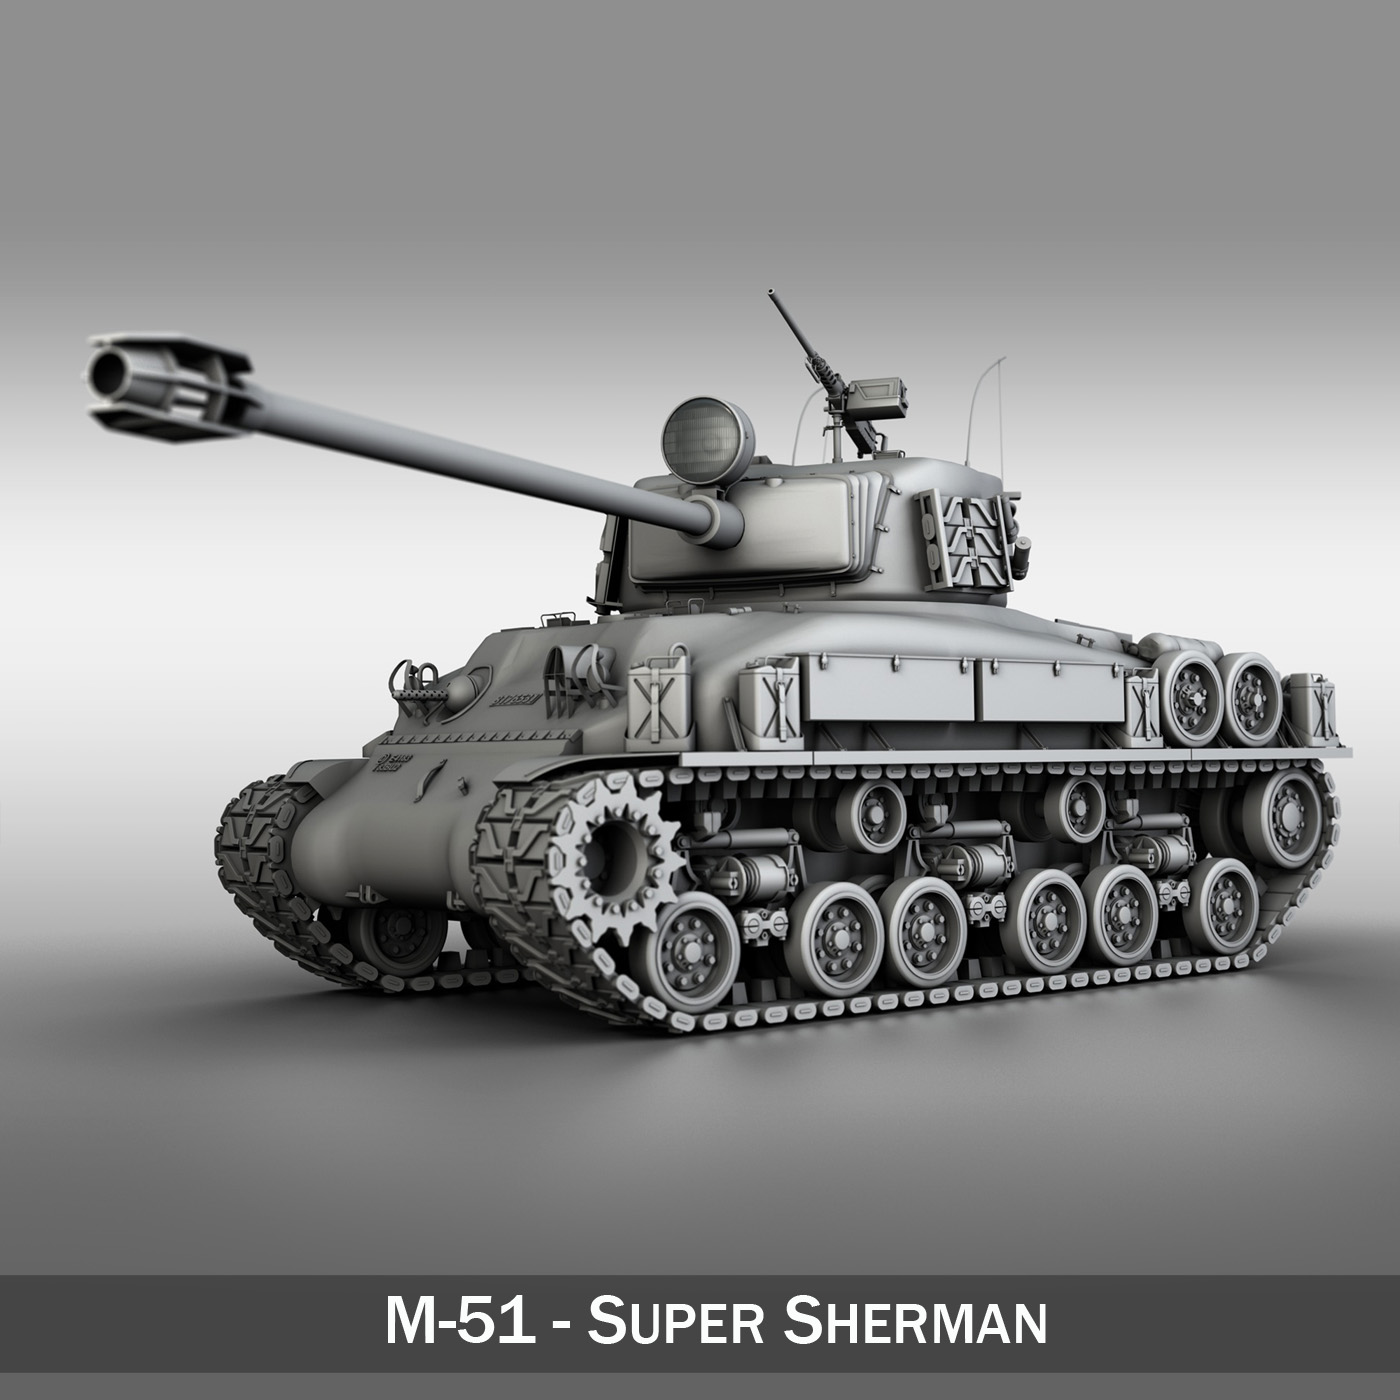 m-51 super sherman isherman 3d model 3ds fbx c4d lwo obj 201883